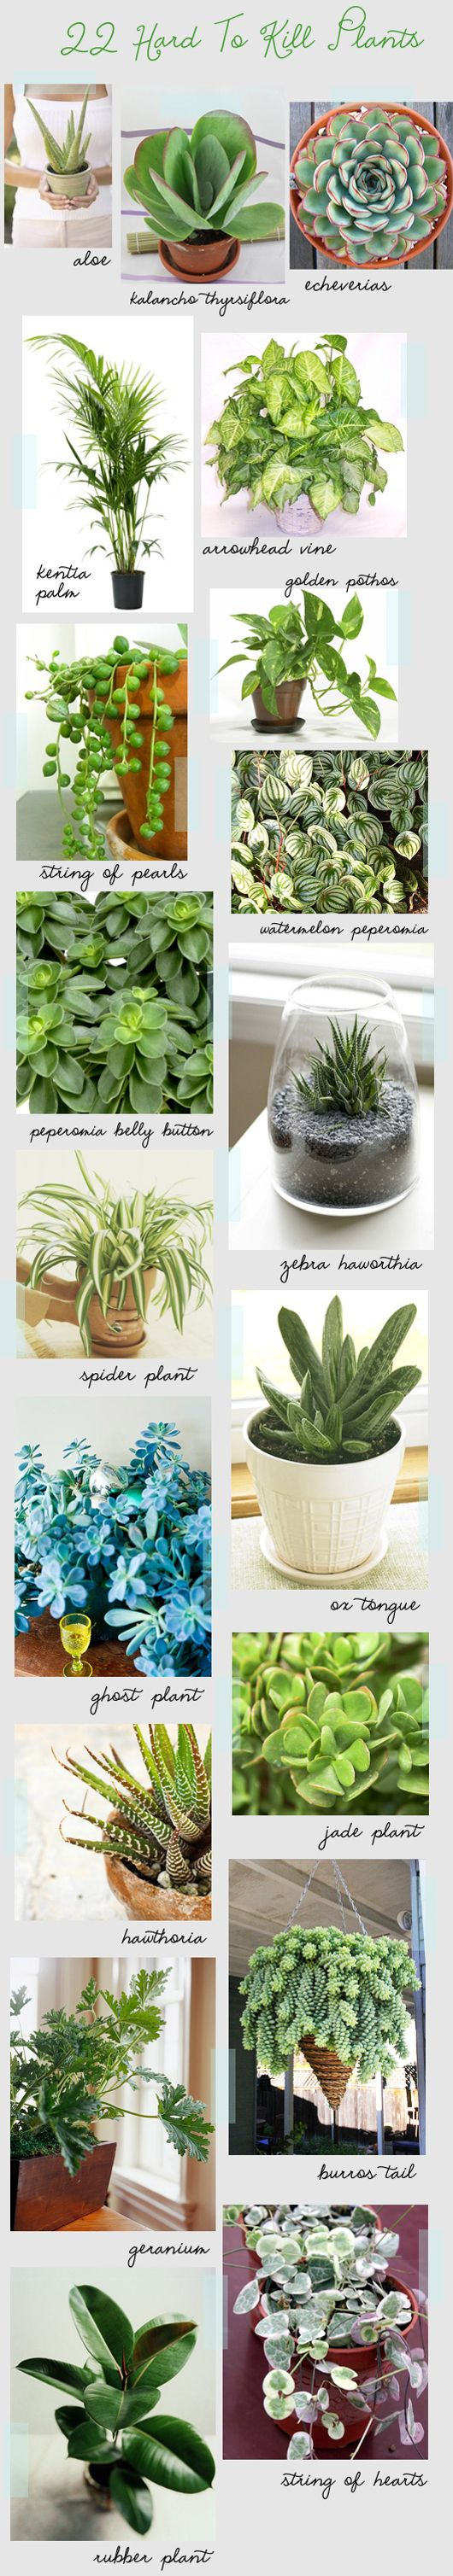 22 Hard To Kill House Plants - I'd like to add Dracaena to this list. Mine has been indestructible and has been resurrected at least twice now.